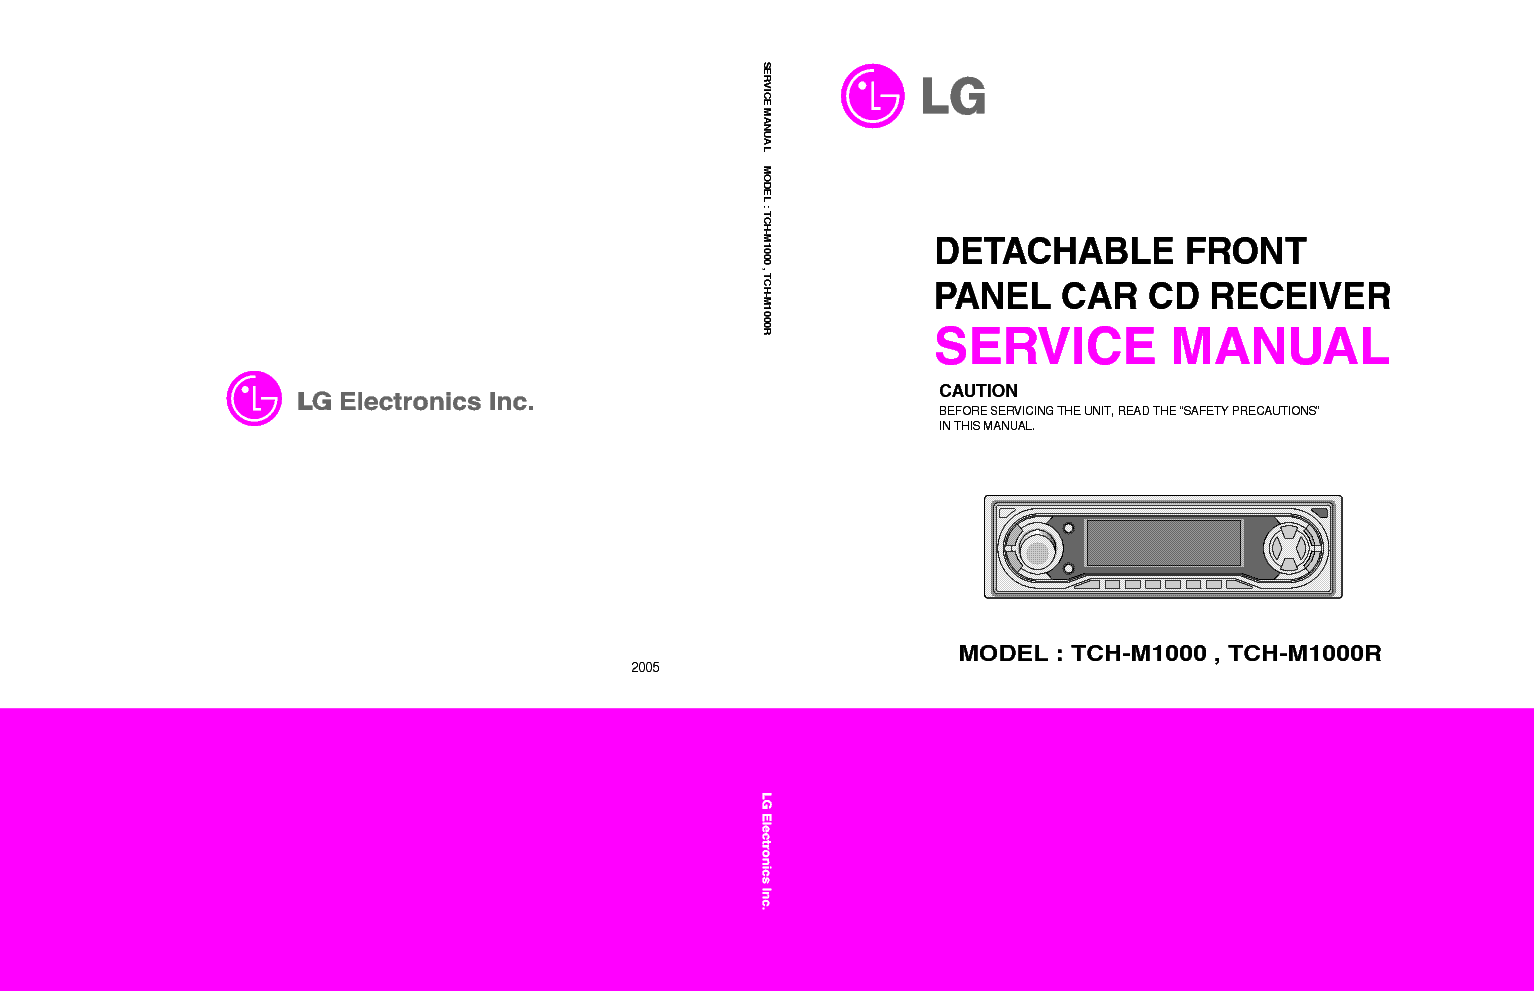 lg dryer service manual pdf